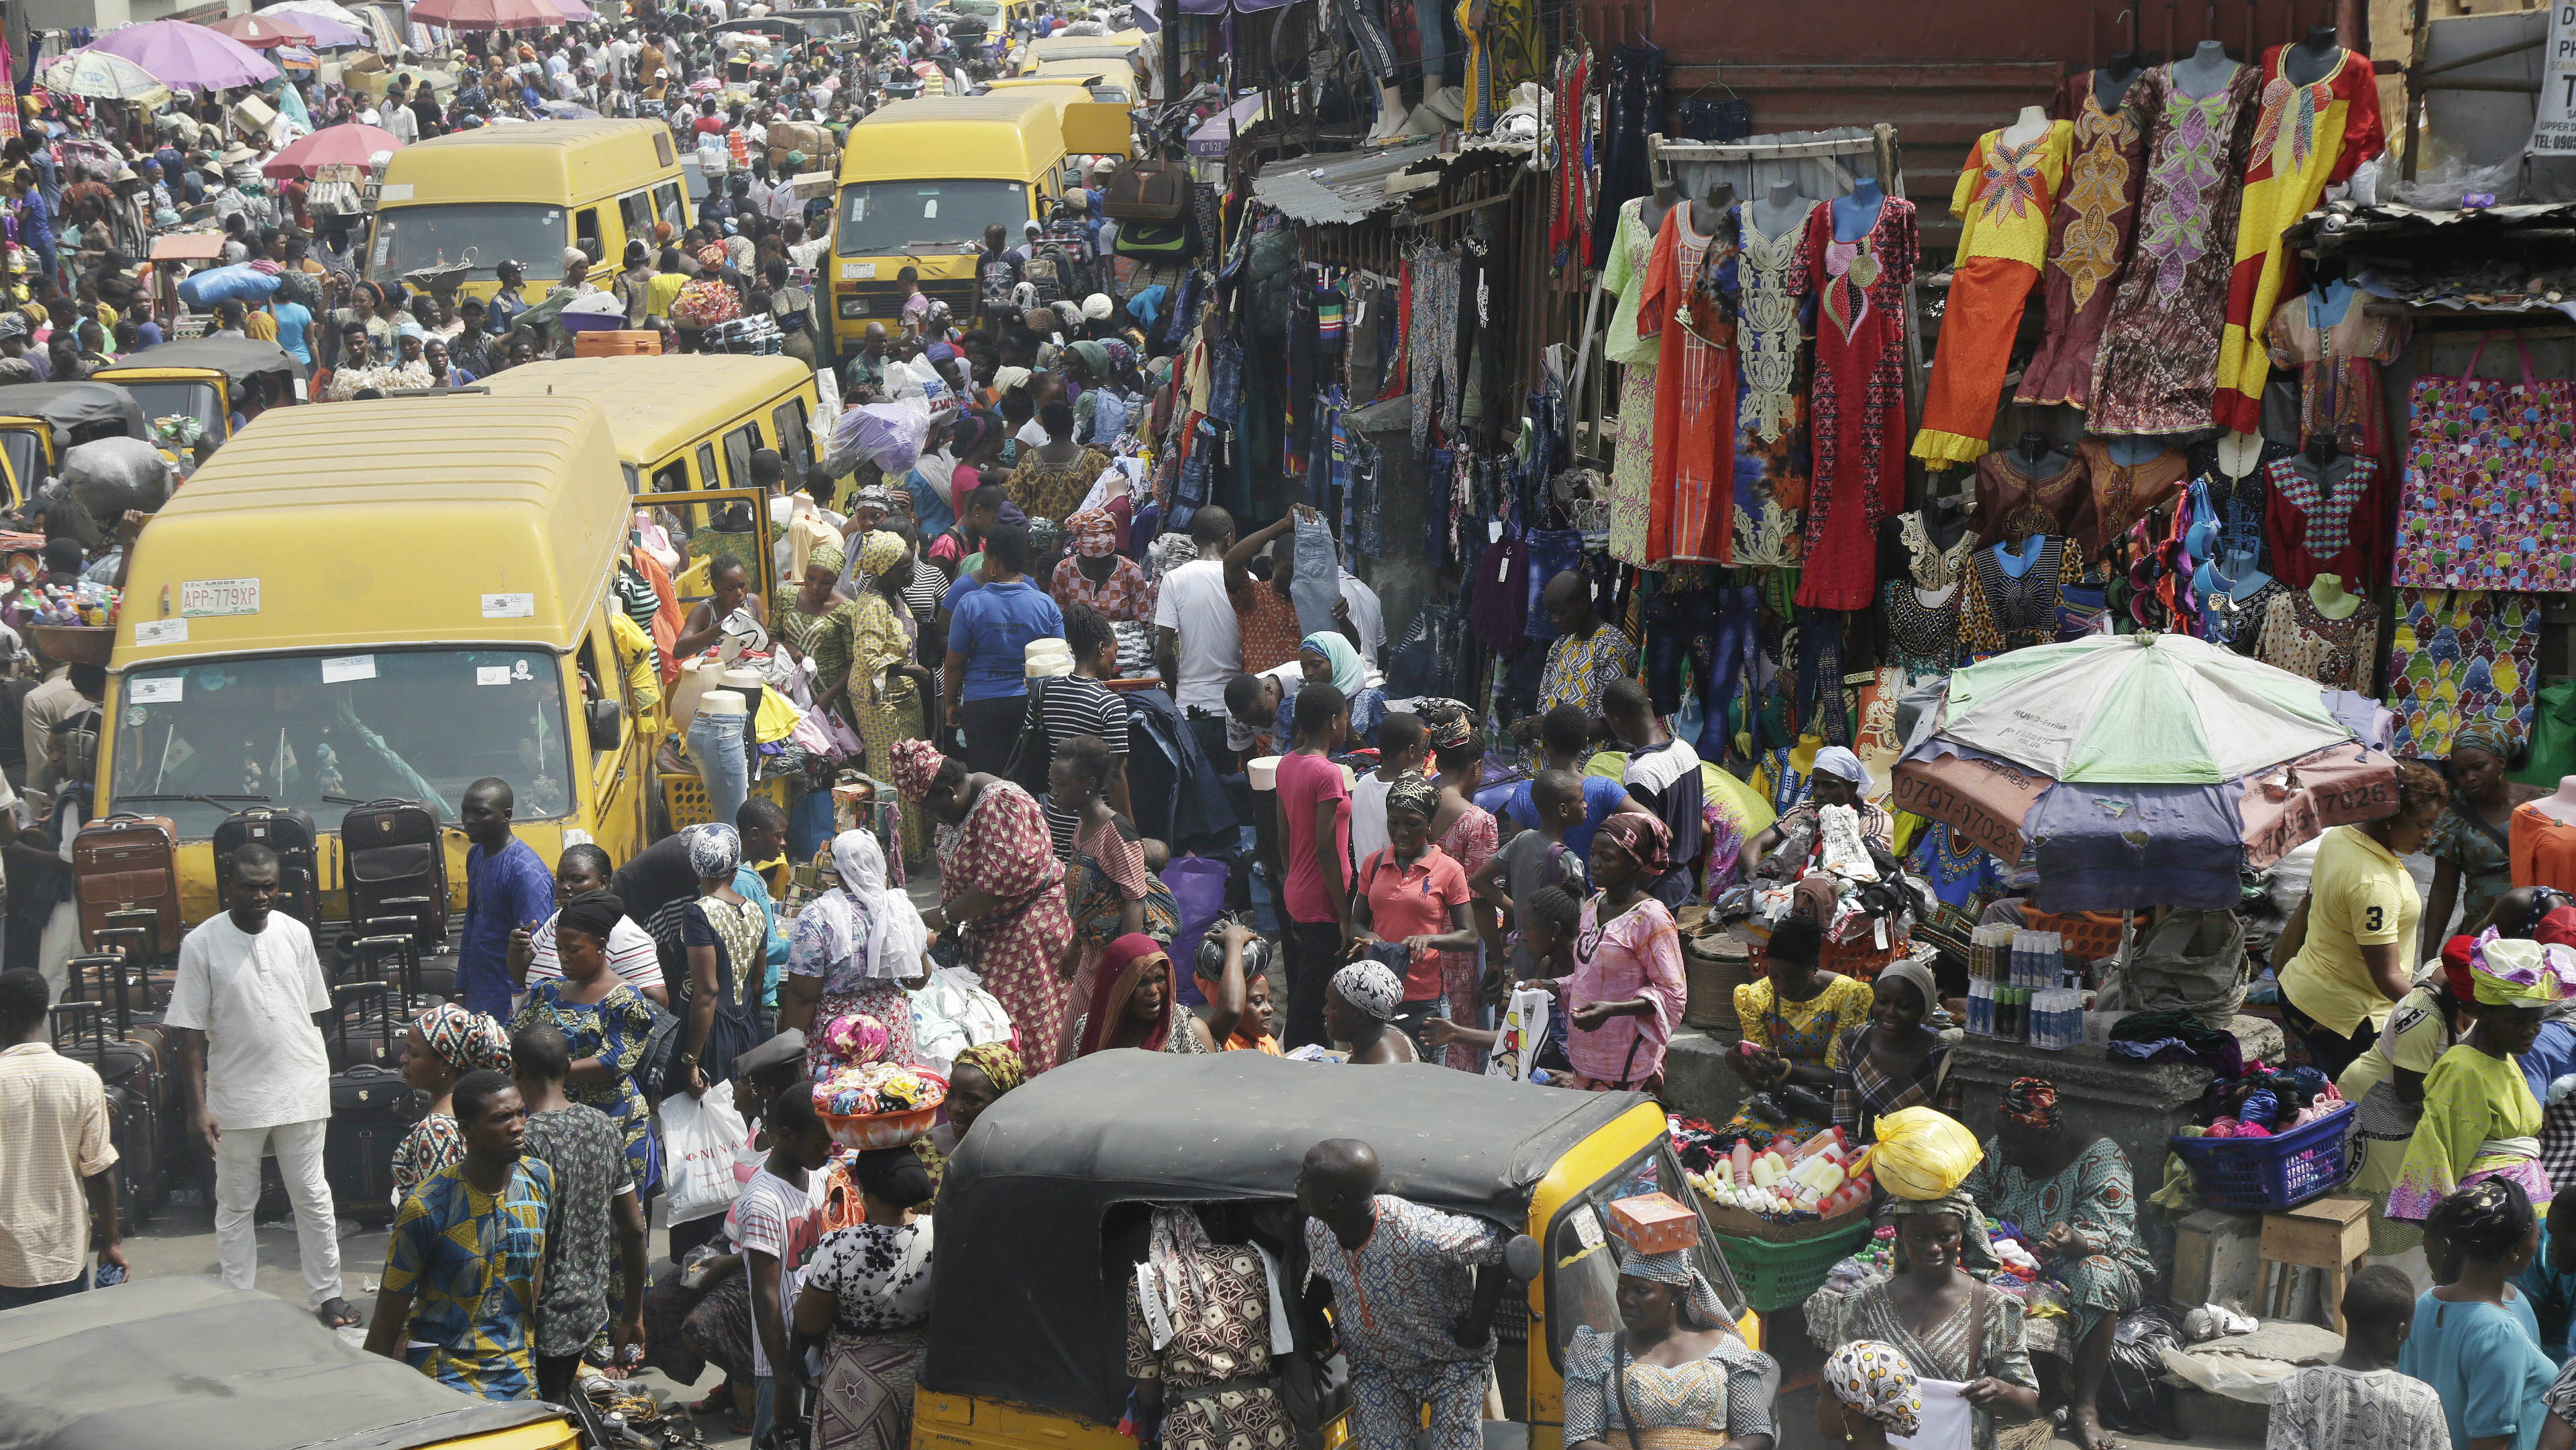 Nigeria population growth: rising unemployment and migration suggest